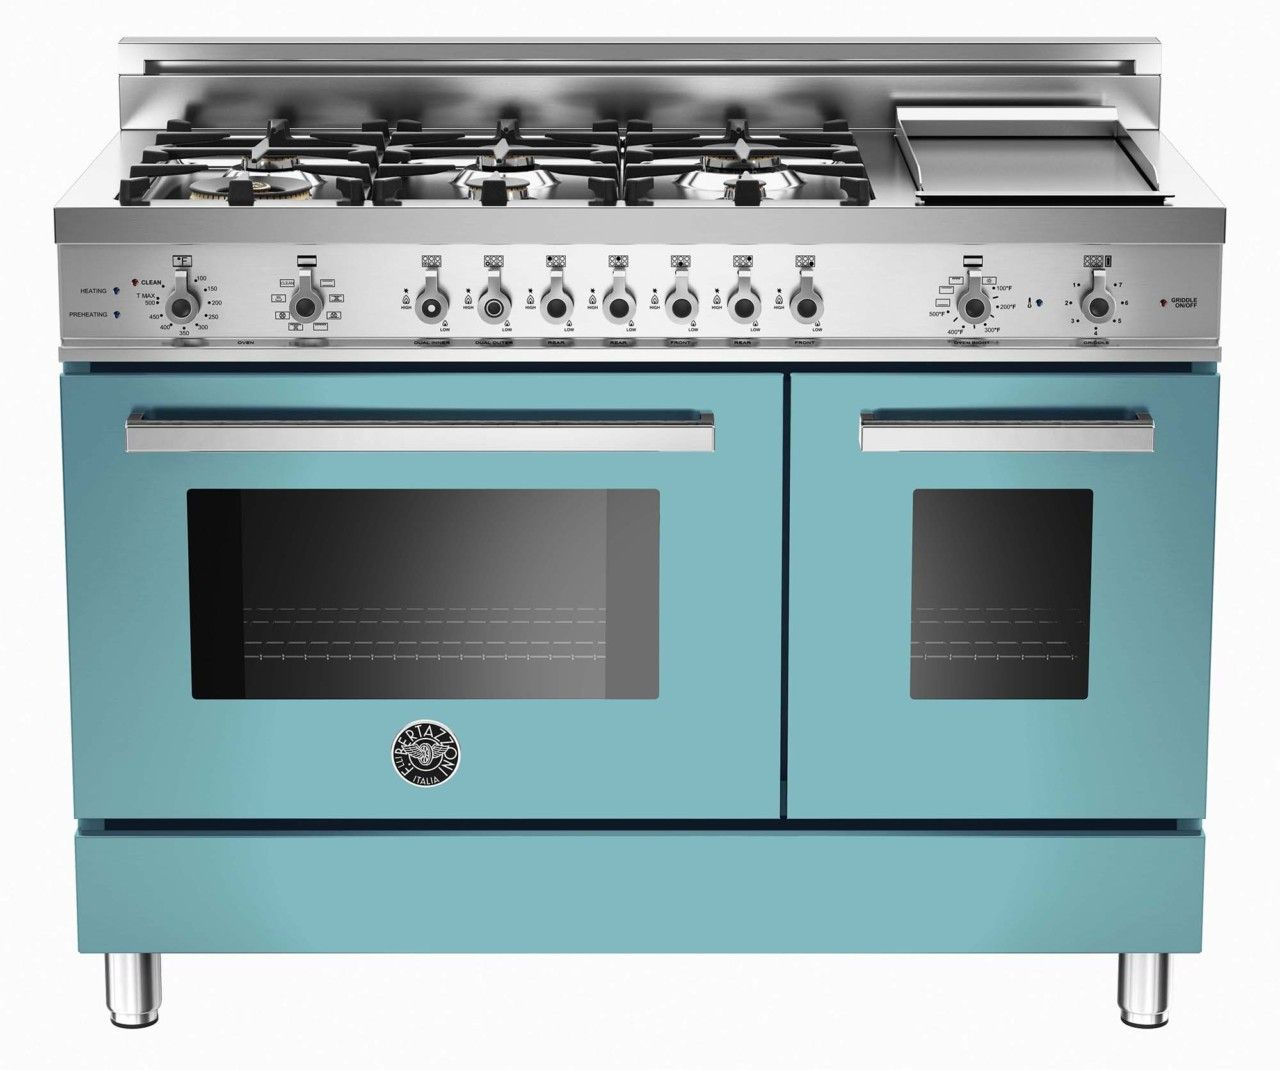 Bertazzoni Oven Ranges Are Painted Like Italian Sports Cars